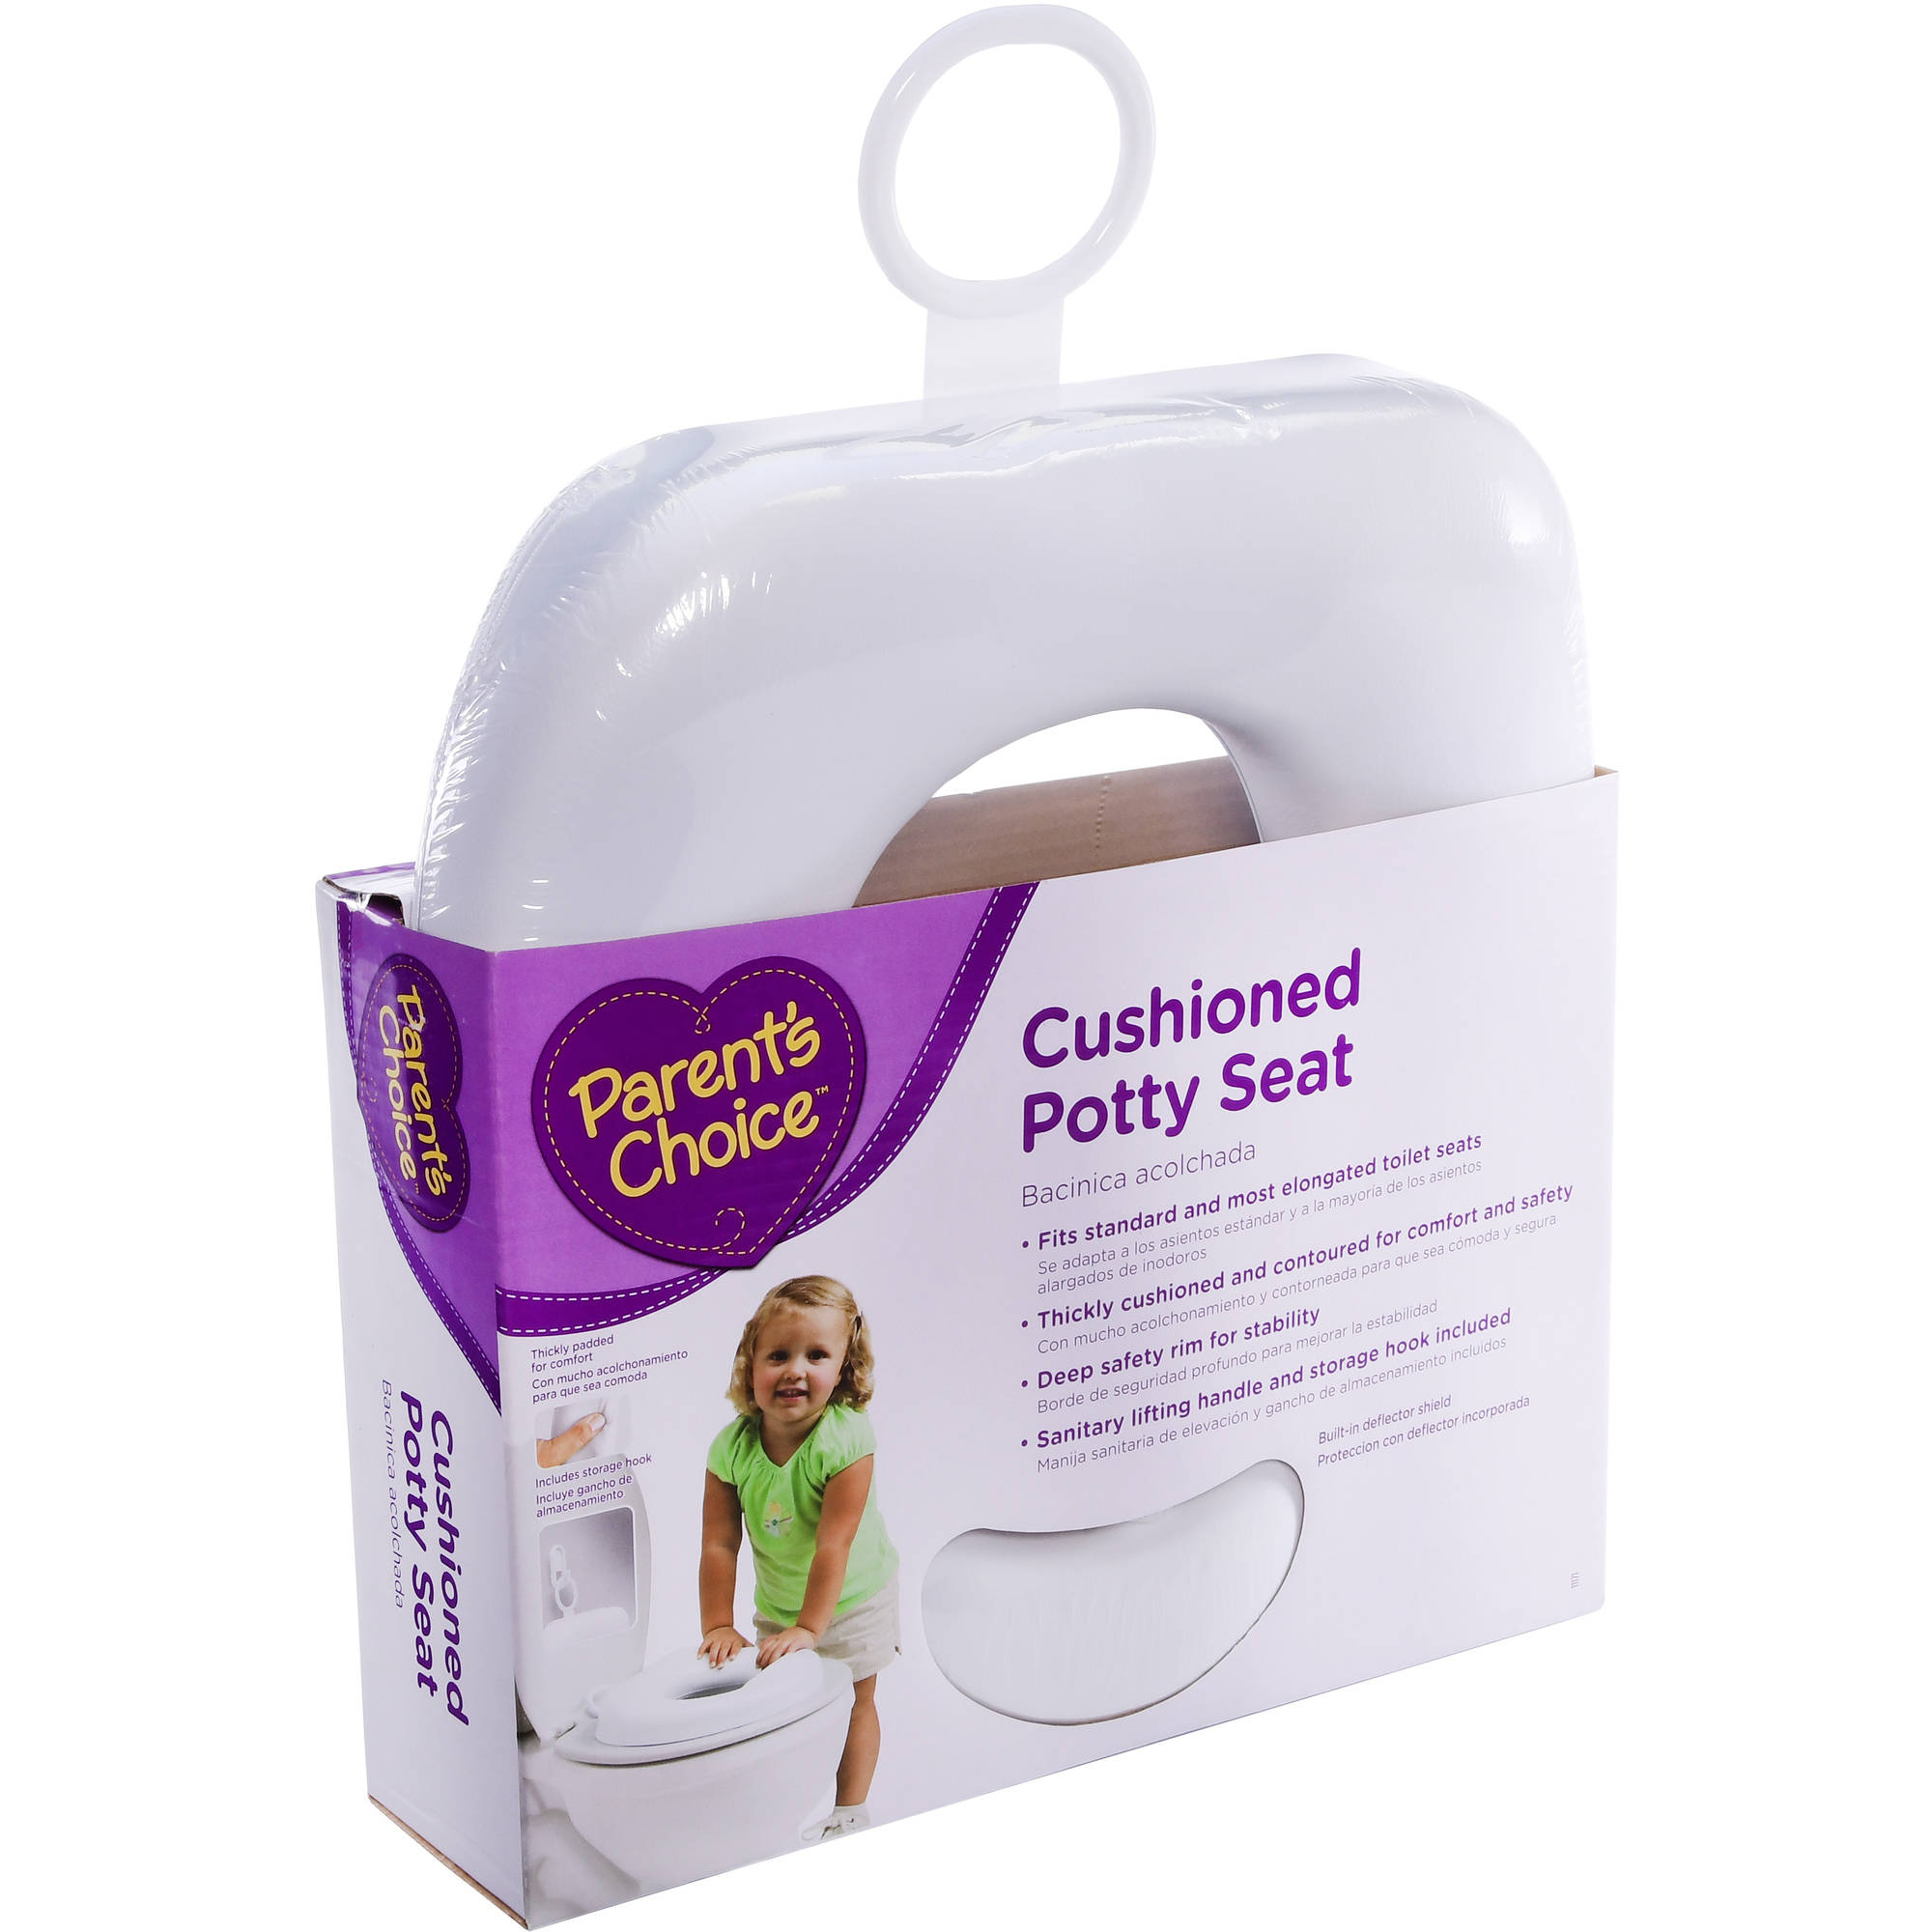 Parent's Choice Cushioned Potty Seat